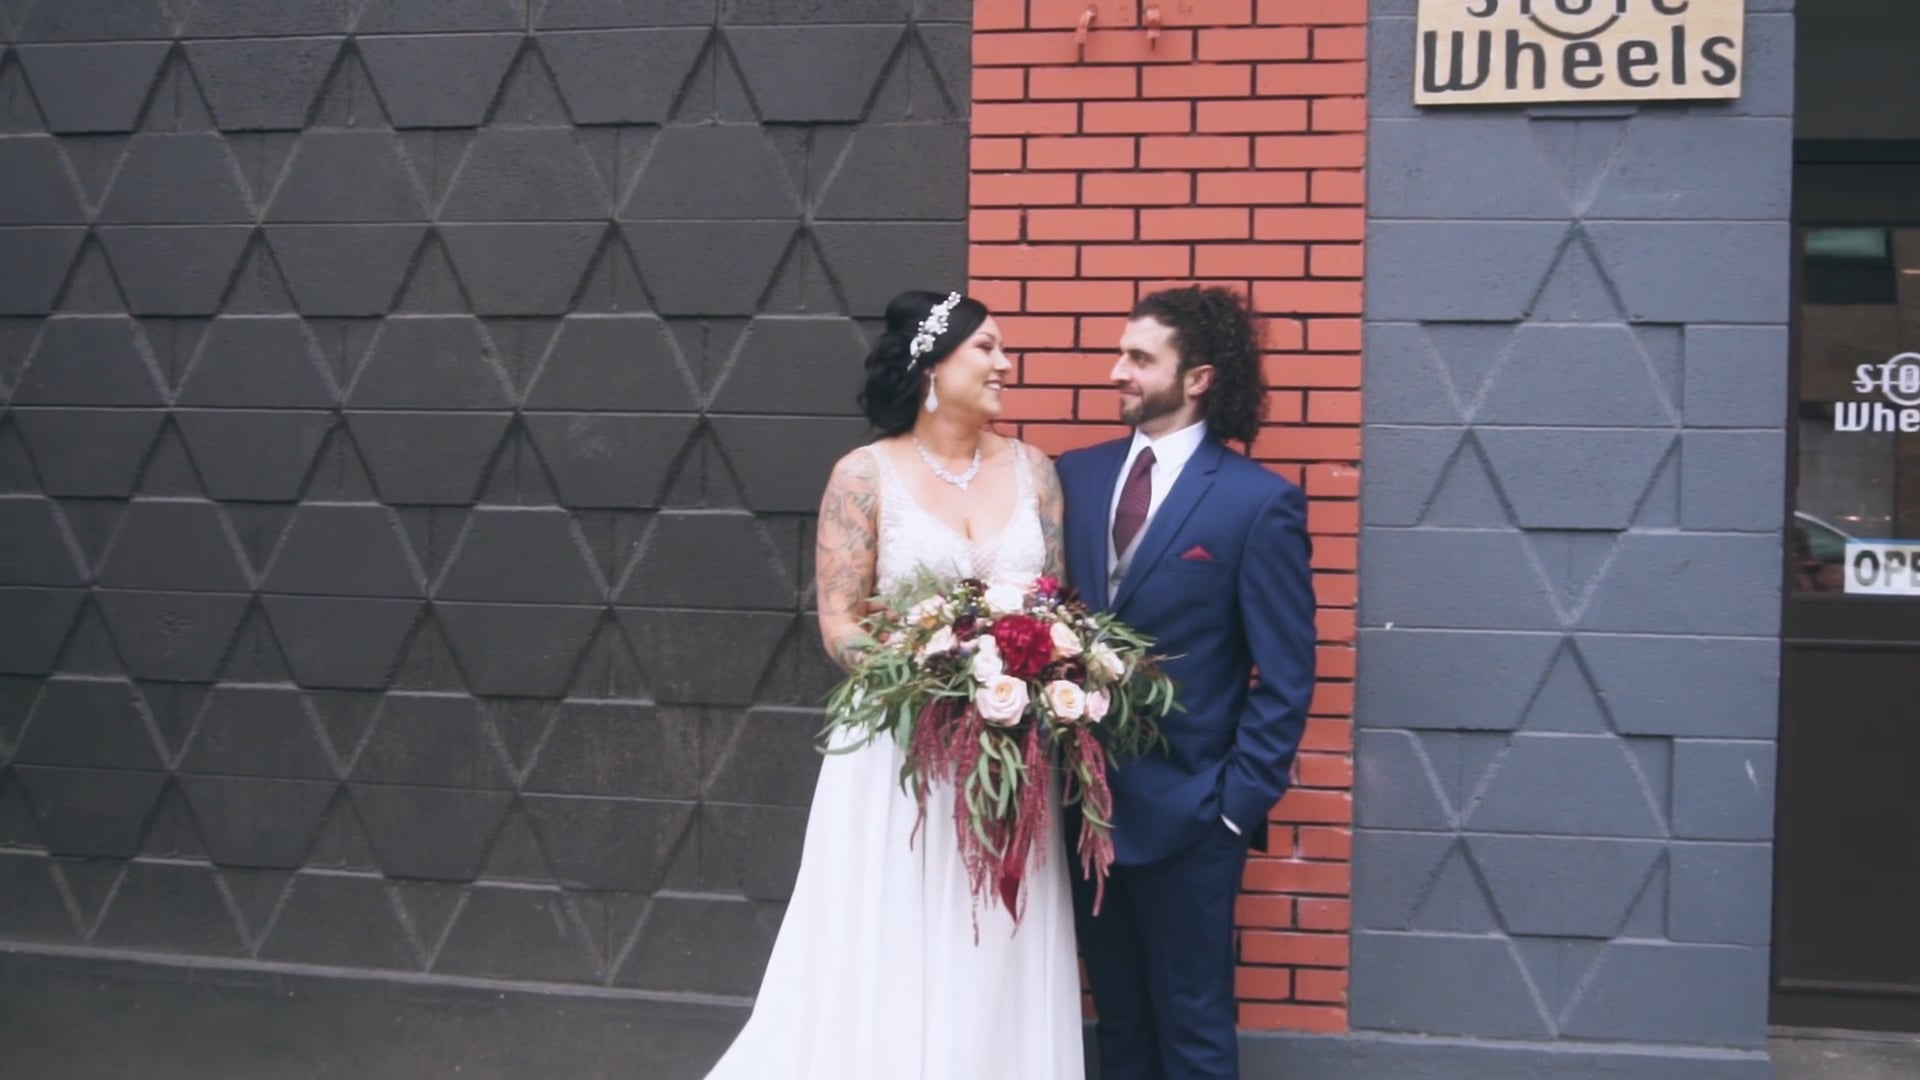 Victoria + Zachary // Highlight Reel // The Baker Building // Portland, OR